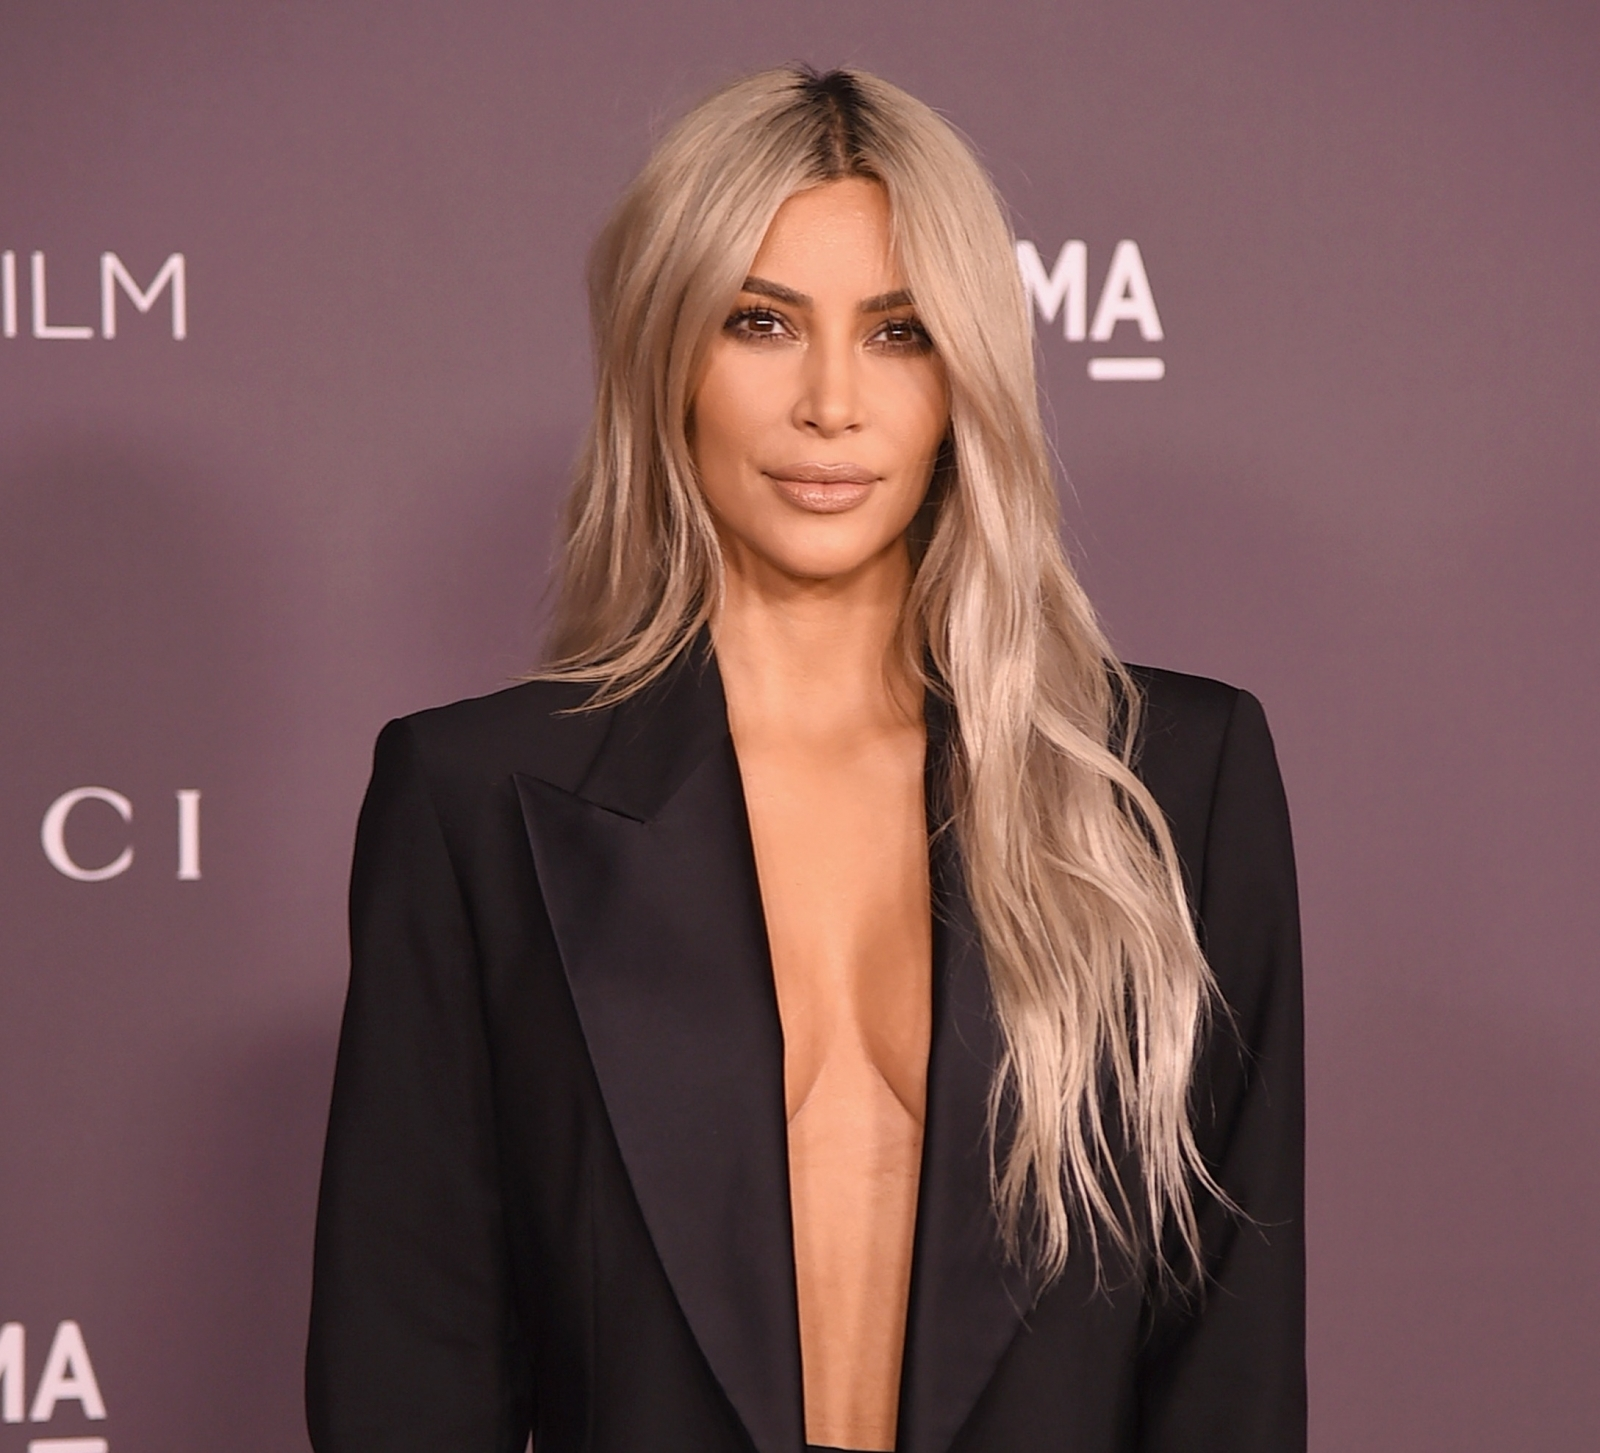 Video Of Kim Kardashian S Racy New Fragrance Shoot Shows